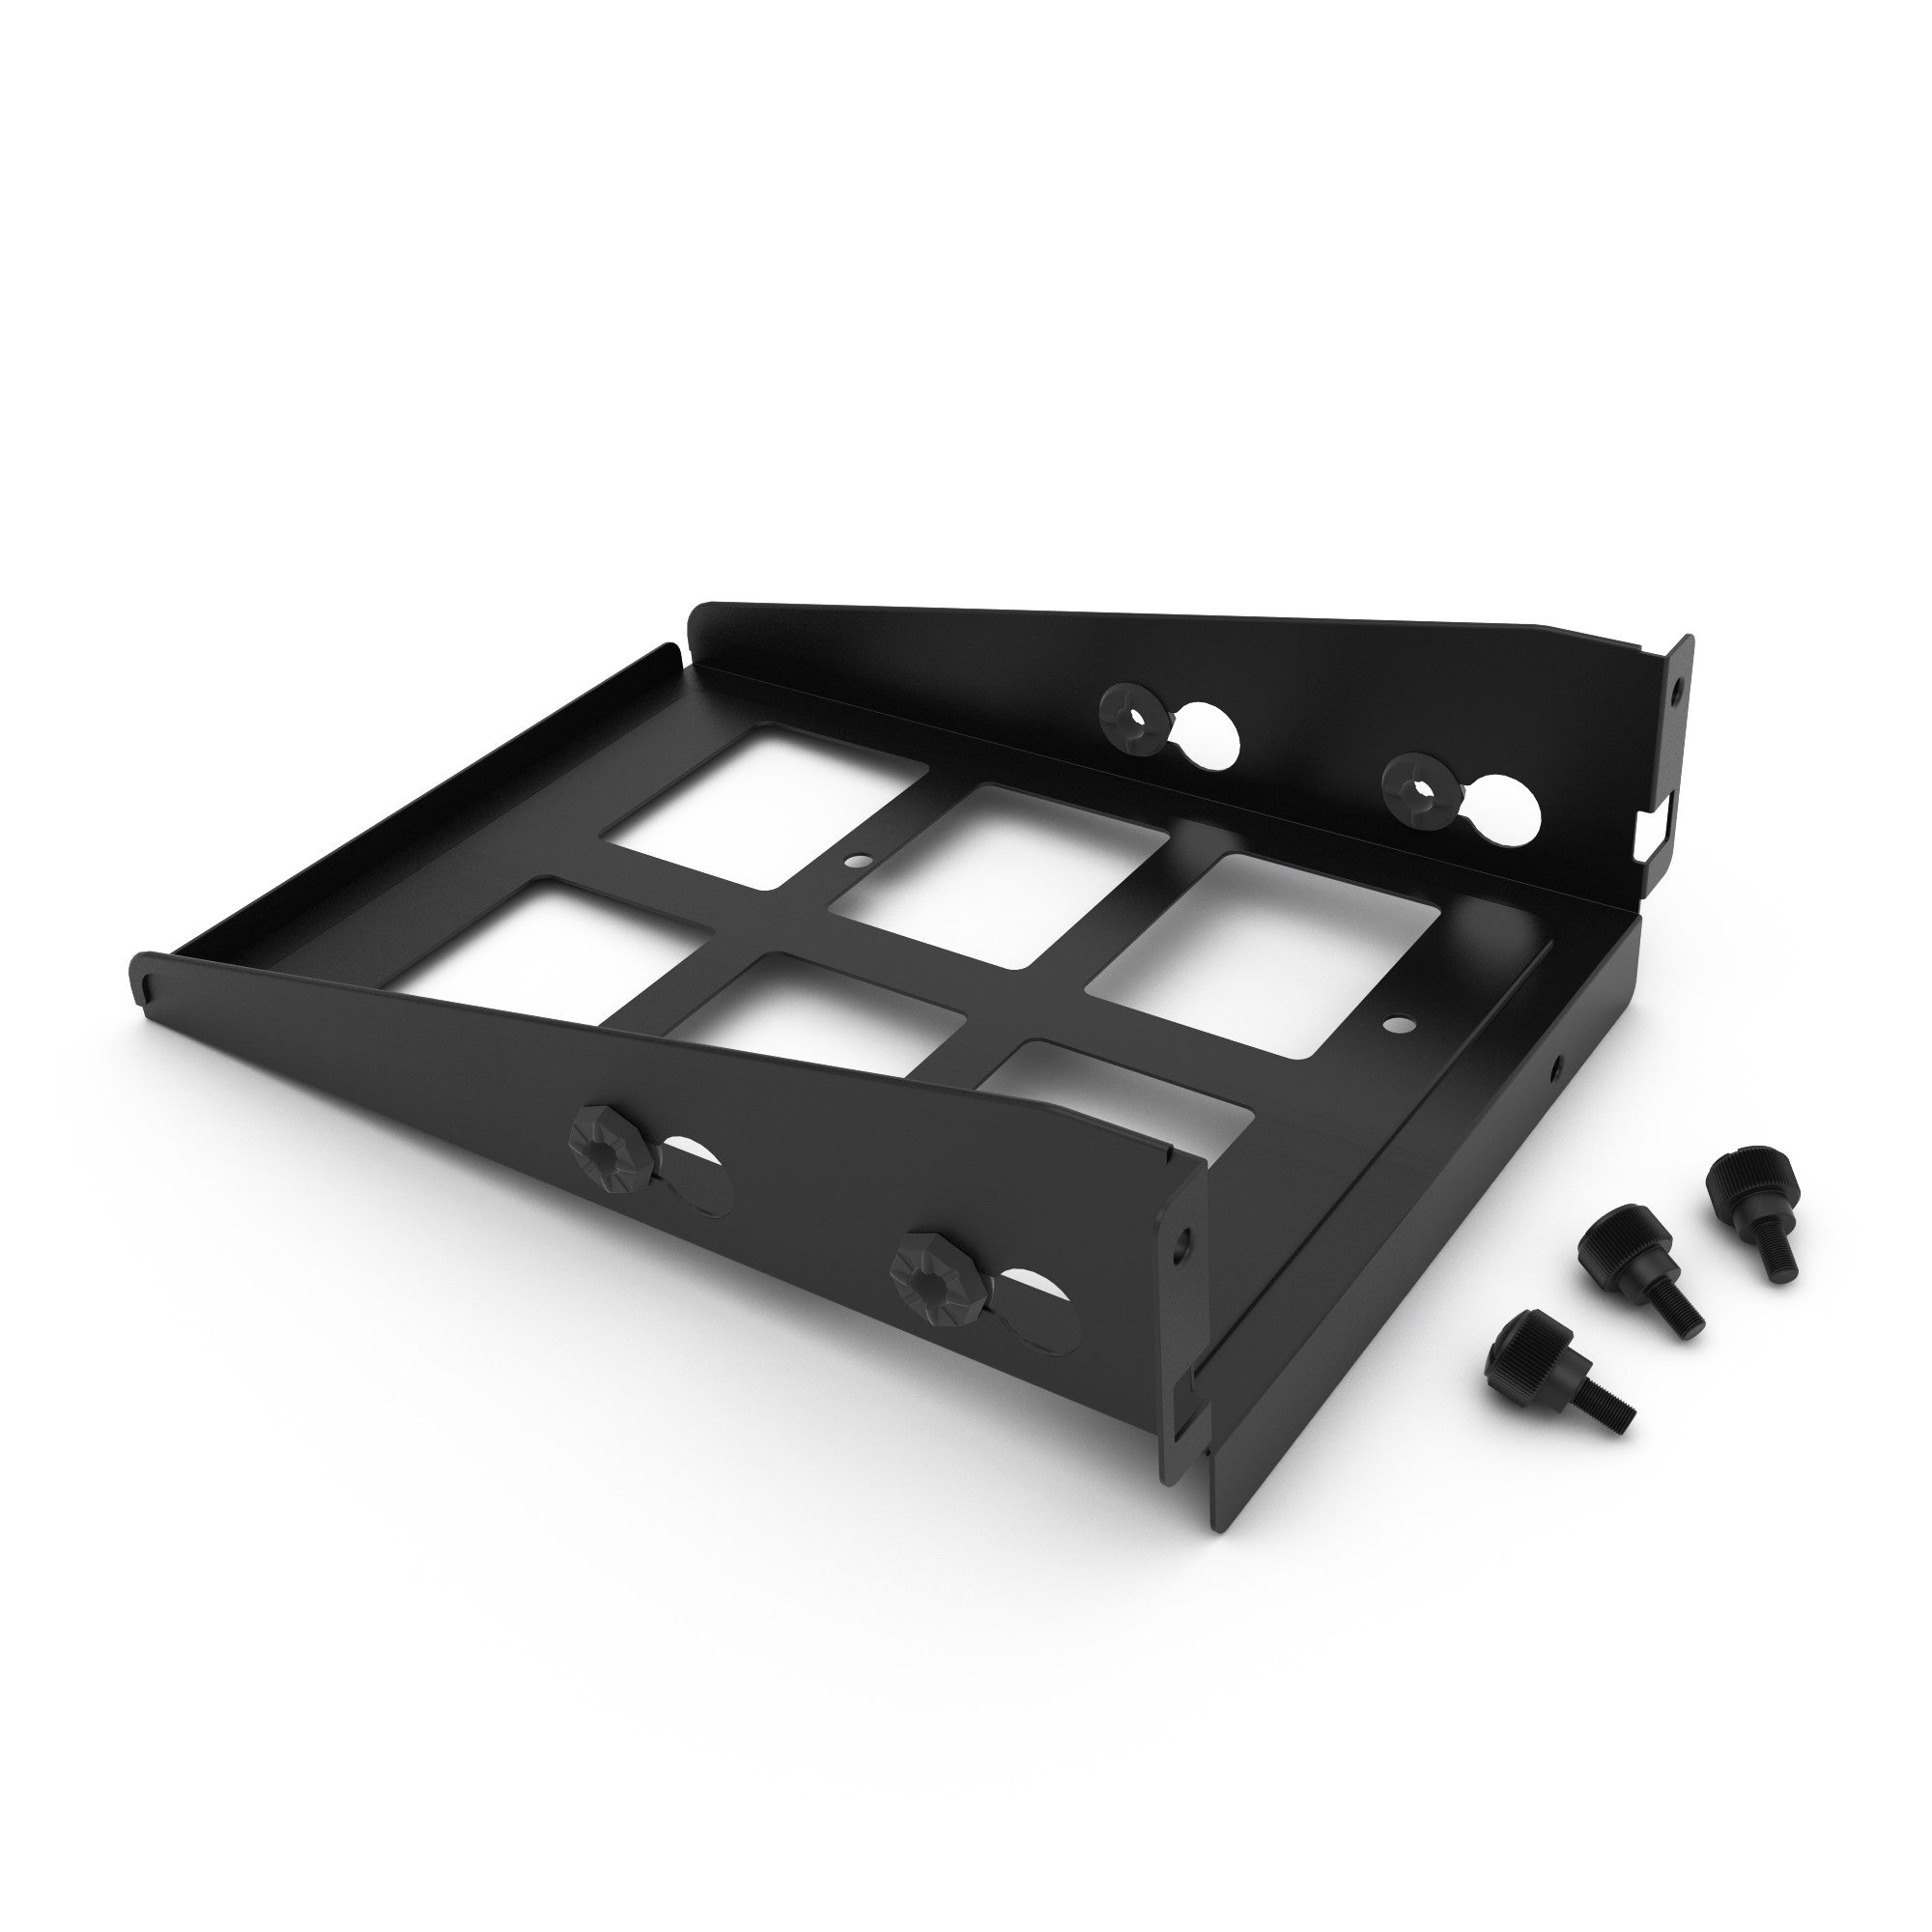 "Phanteks 3.5"" HDD Modular Bracket"